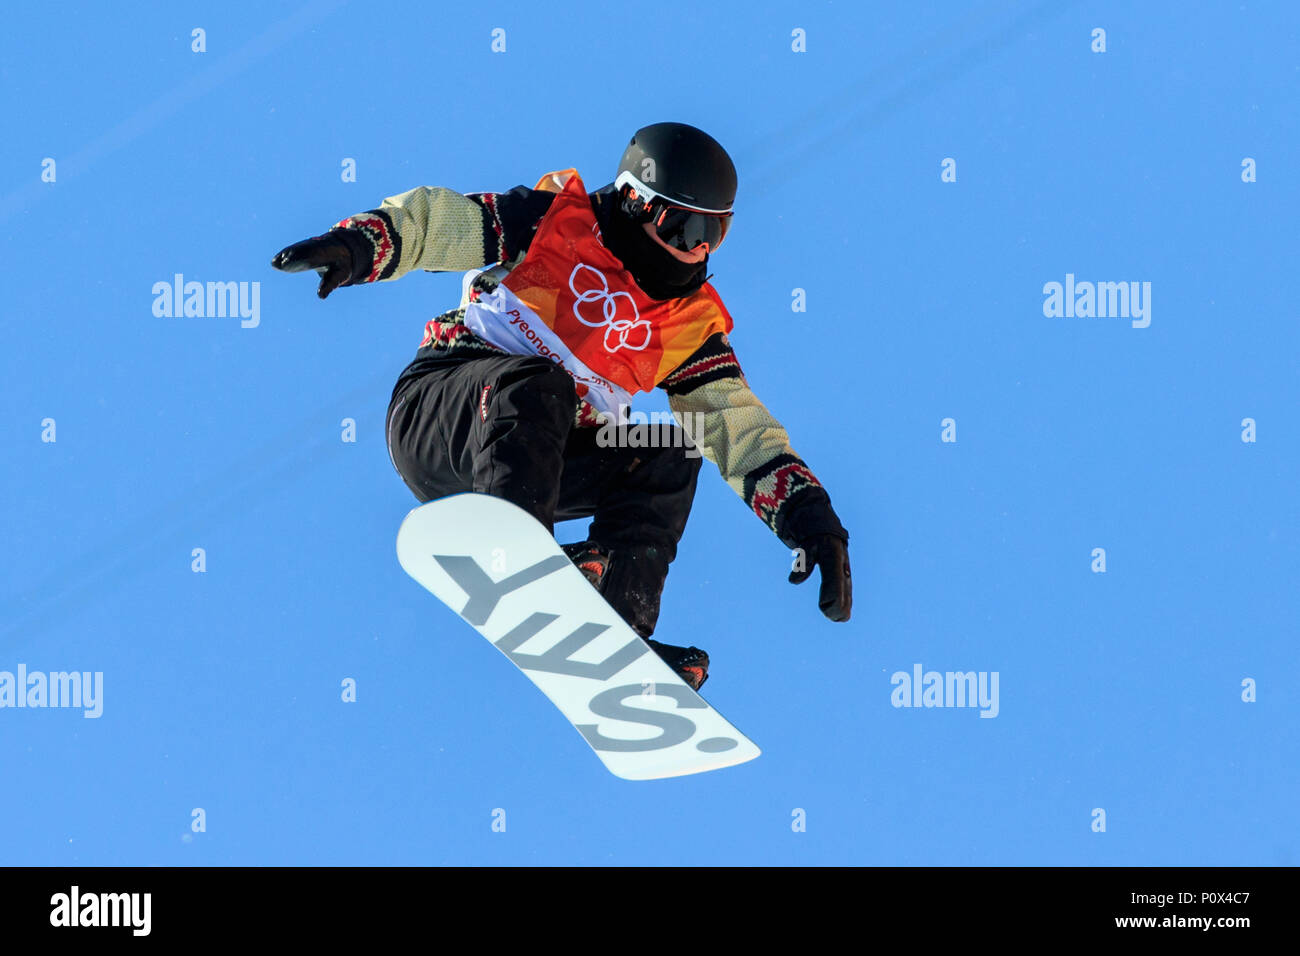 Derek Livingston (CAN) competing in  the Men's Snowboarding Half Pipe Qualification at the Olympic Winter Games PyeongChang 2018 - Stock Image